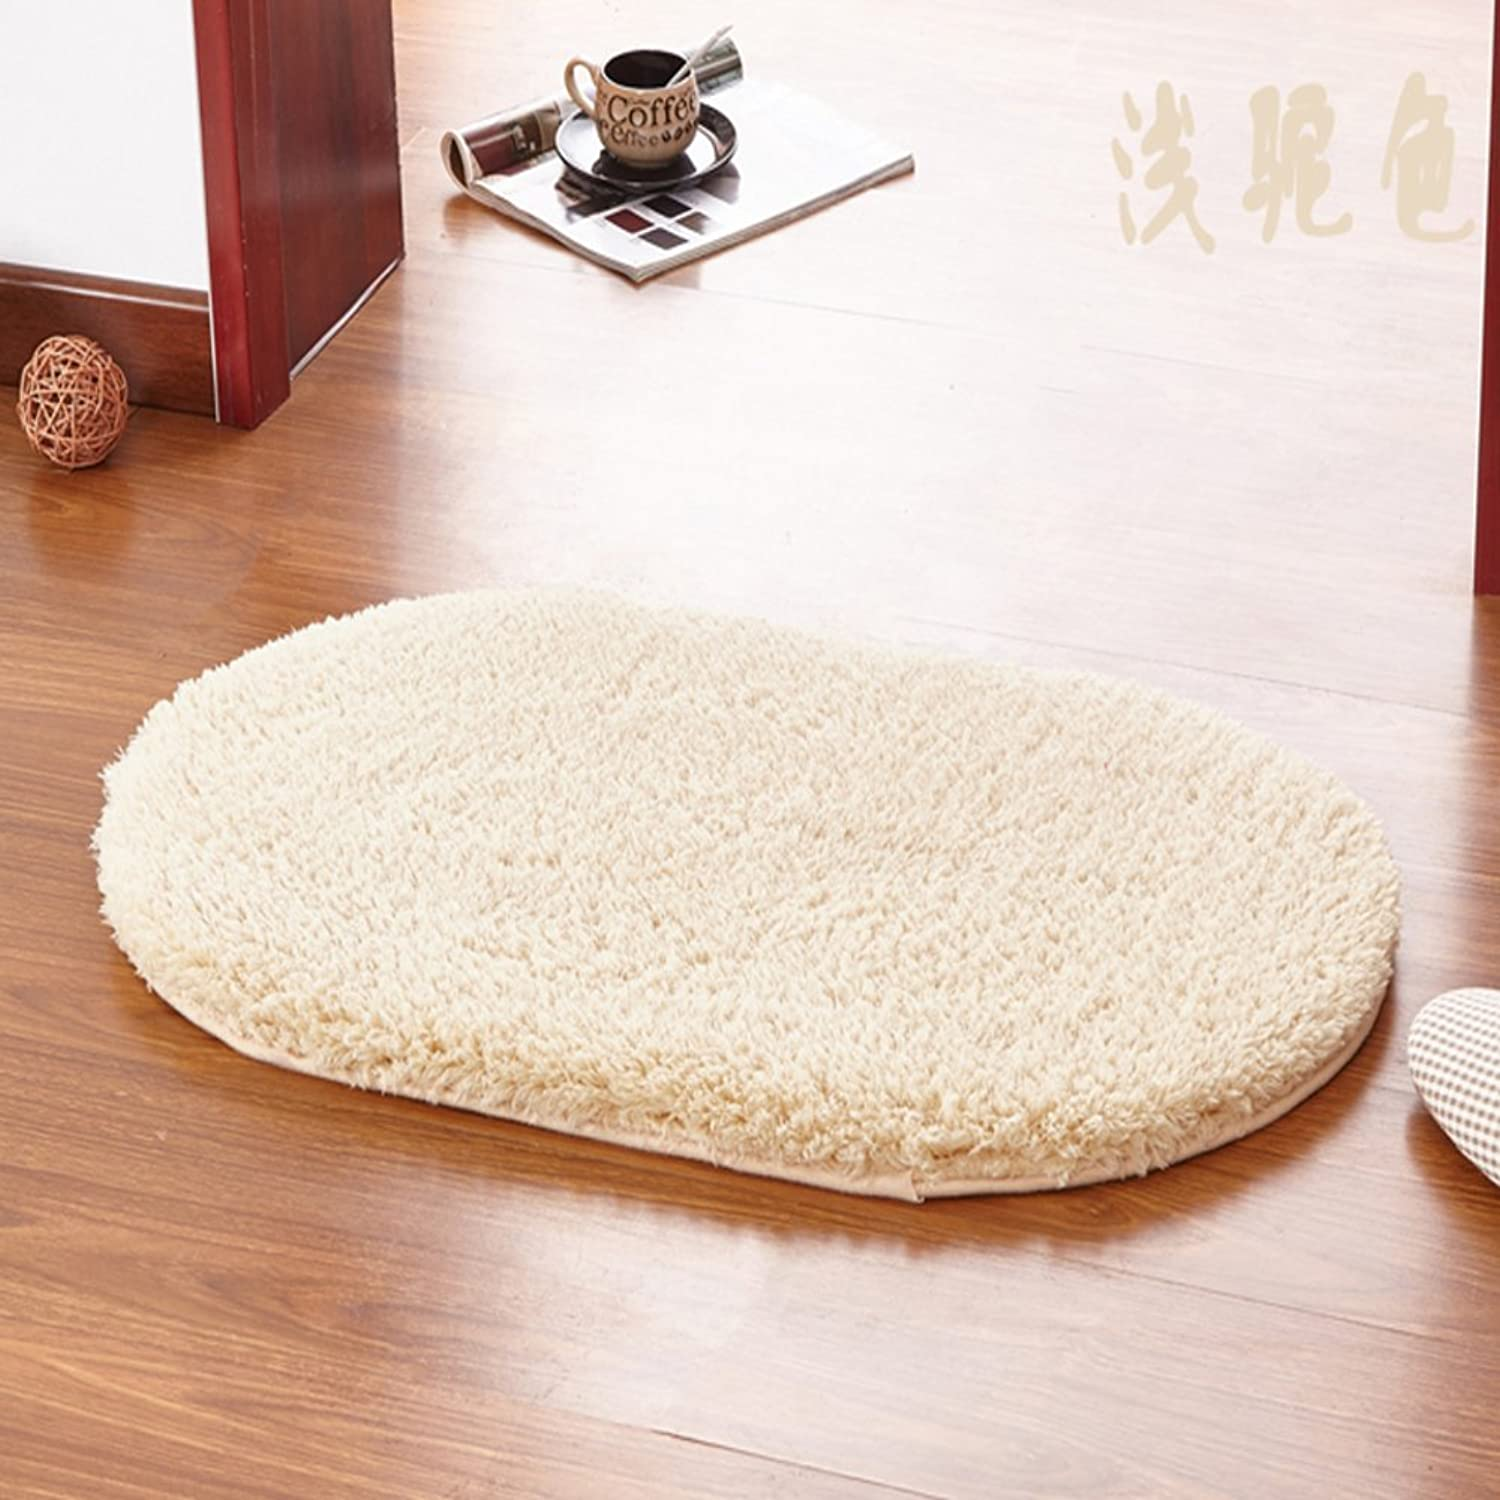 Enter the door mat carpet bedroom living room absorbent foot pad bathroom kitchen bathroom non-slip mat-F 100x160cm(39x63inch)